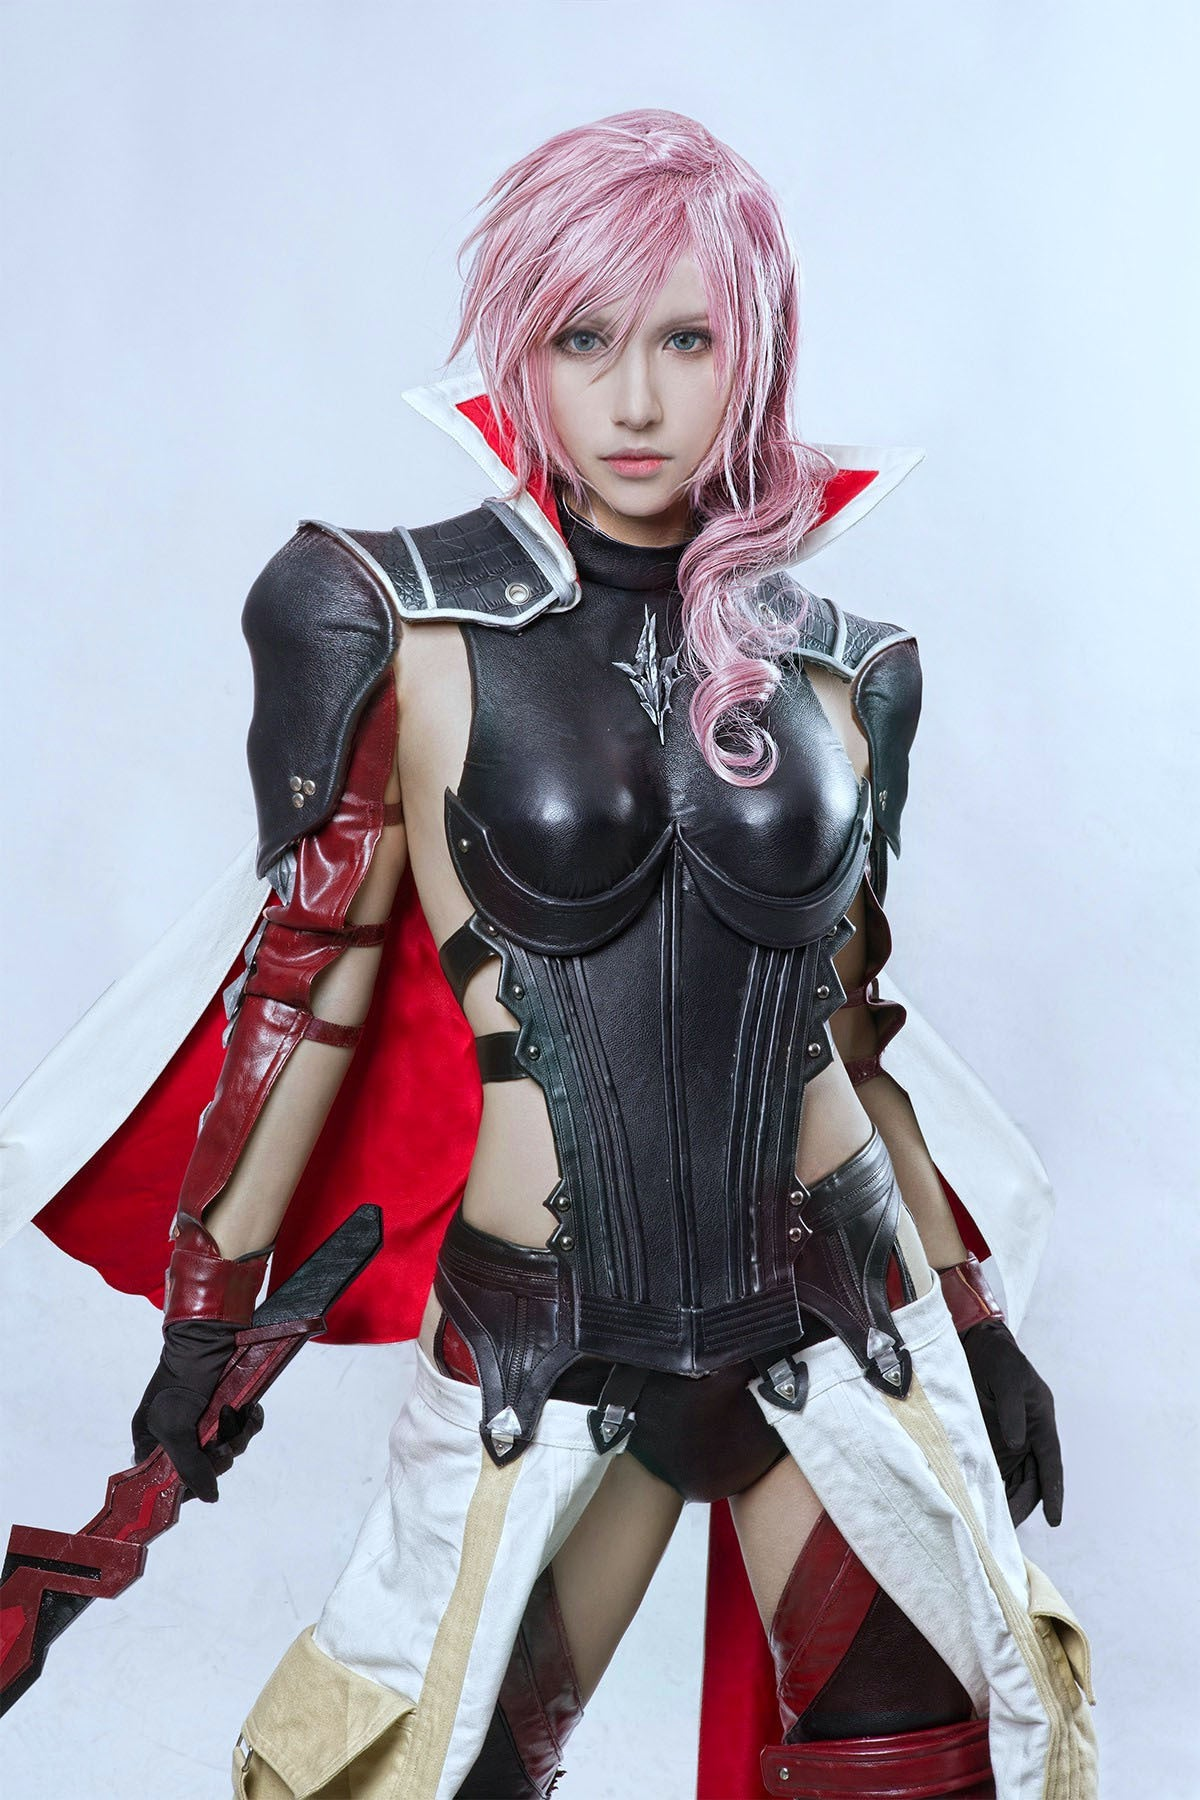 Spectacular Final Fantasy Cosplay Looks Like A Screenshot